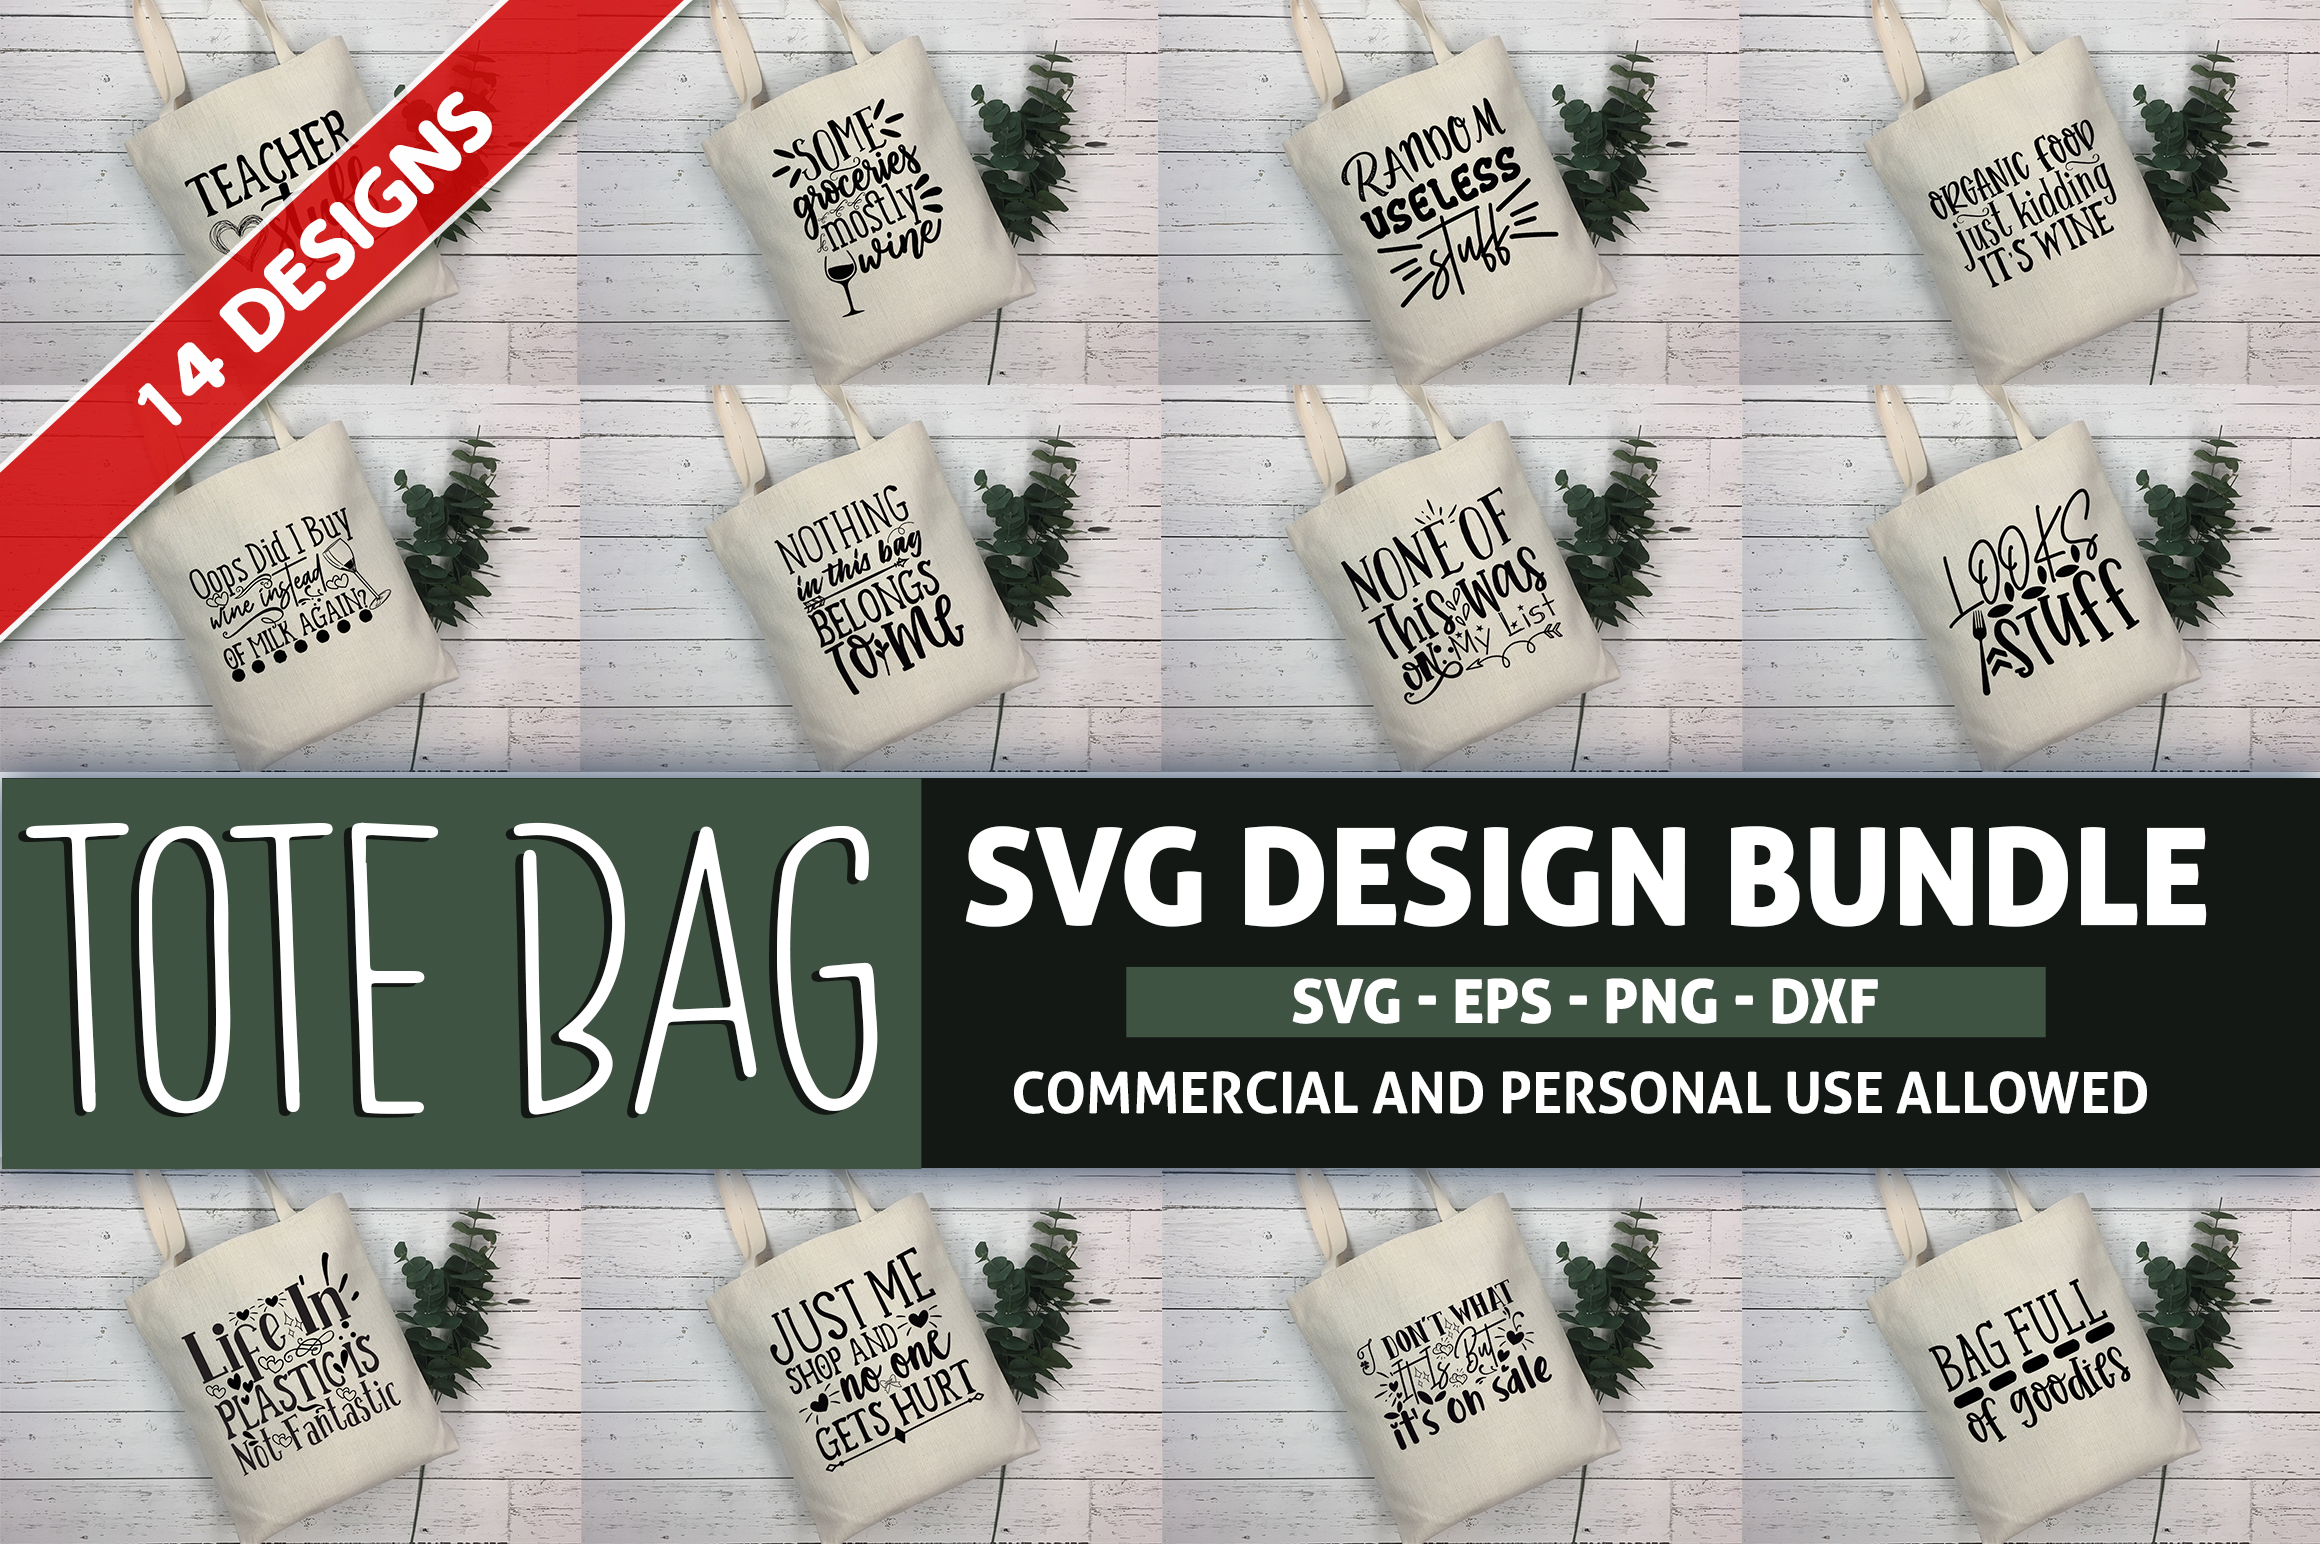 510 SVG DESIGN THE MIGHTY BUNDLE |32 DIFFERENT BUNDLES example image 5